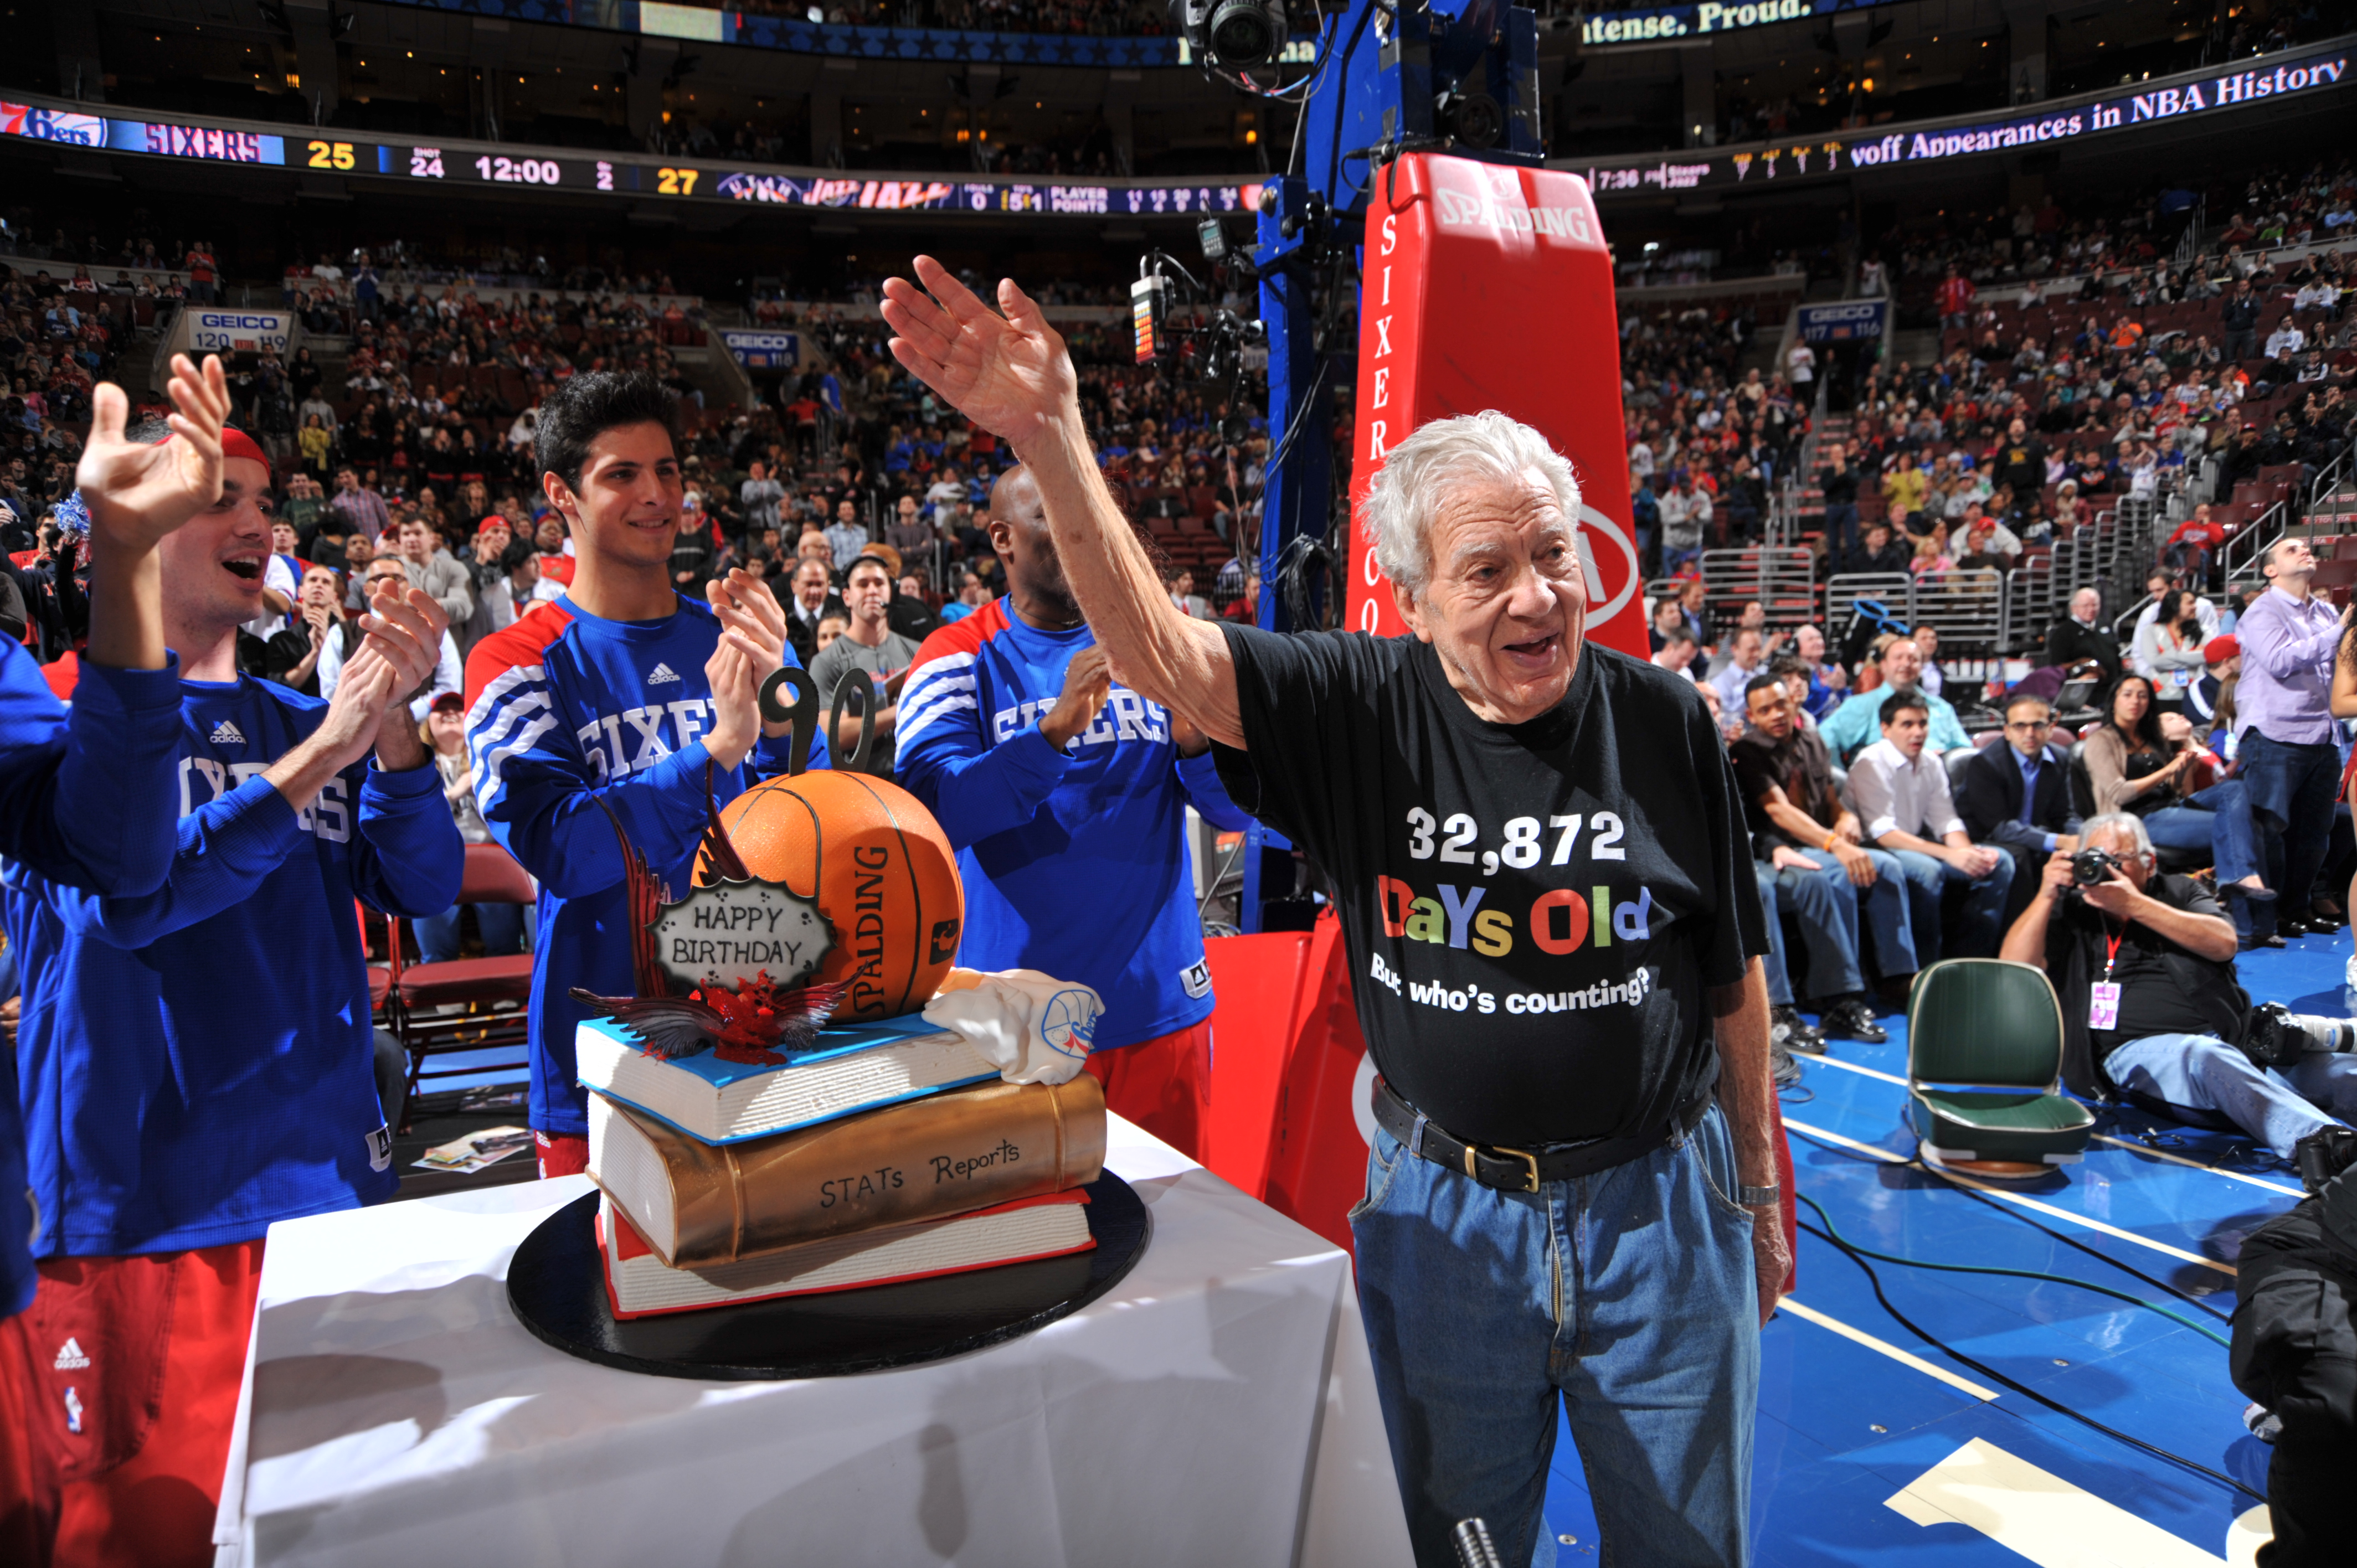 PHILADELPHIA, PA - MARCH 9: Harvey Pollack, Director of statistical information for the Philadelphia 76ers is acknowledged on his 90th Birthday during a break in the action against the Utah Jazz on March 9, 2012 at the Wells Fargo Center in Philadelphia,